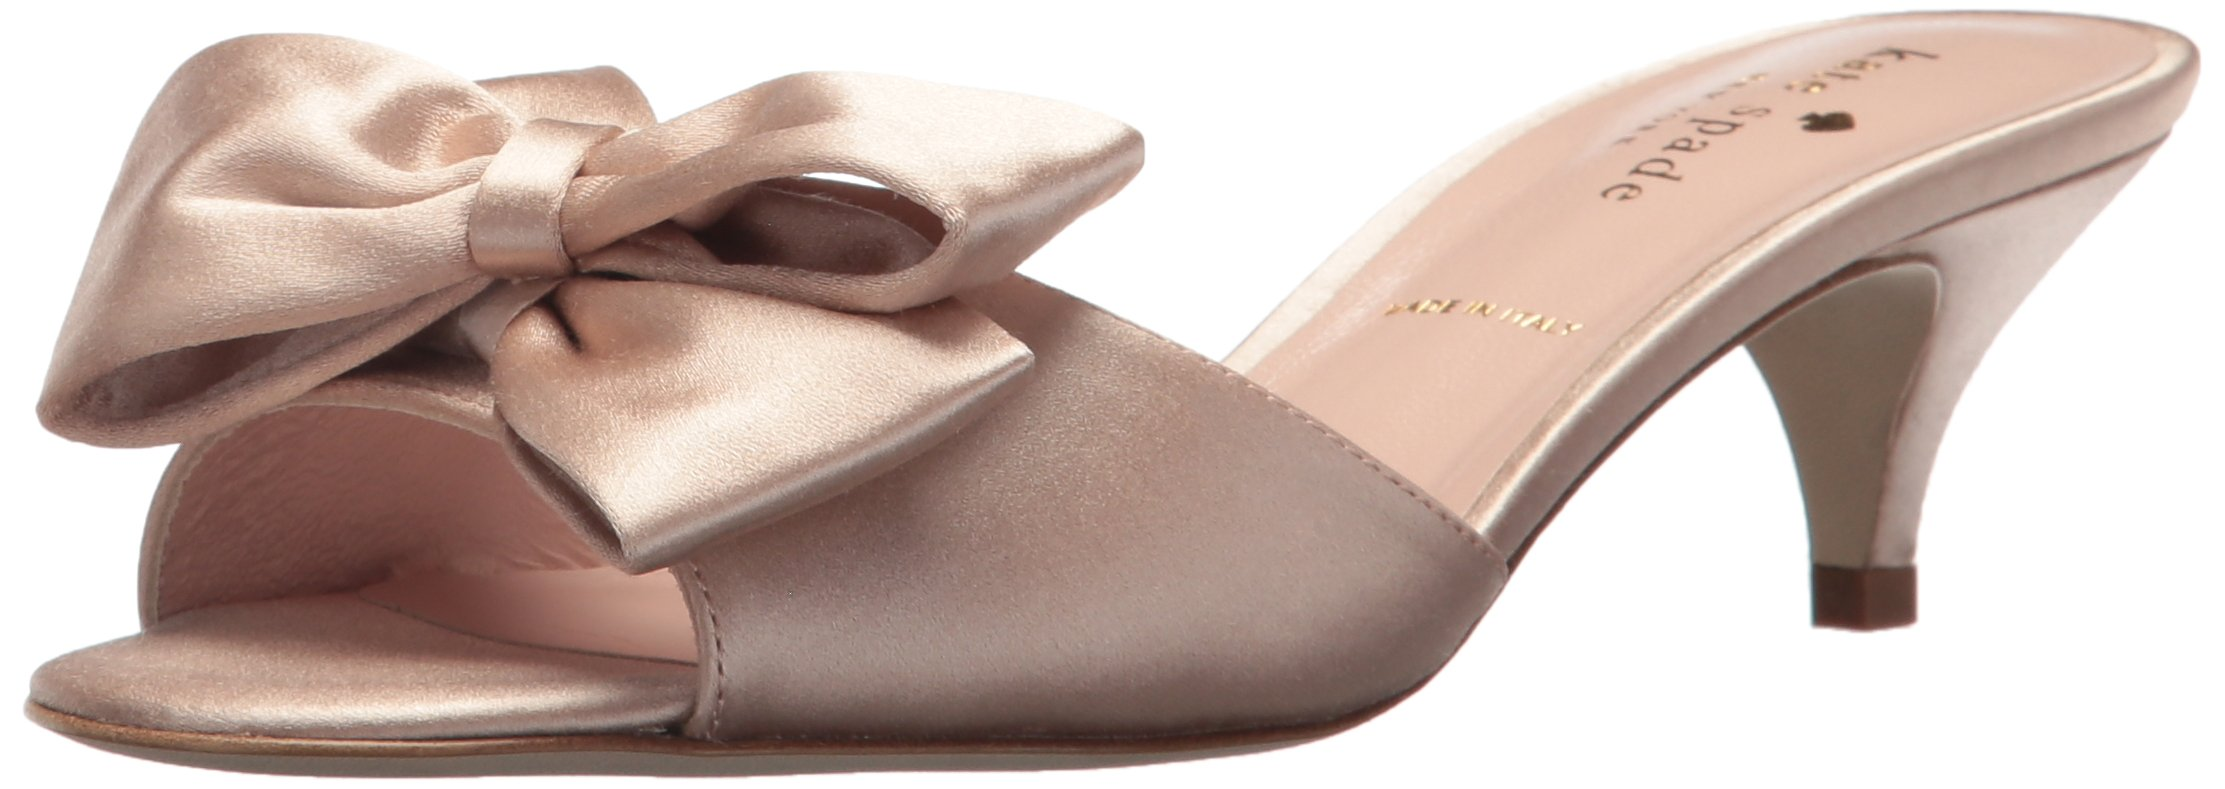 kate spade new york Women's Plaza, Blush, 6 M US